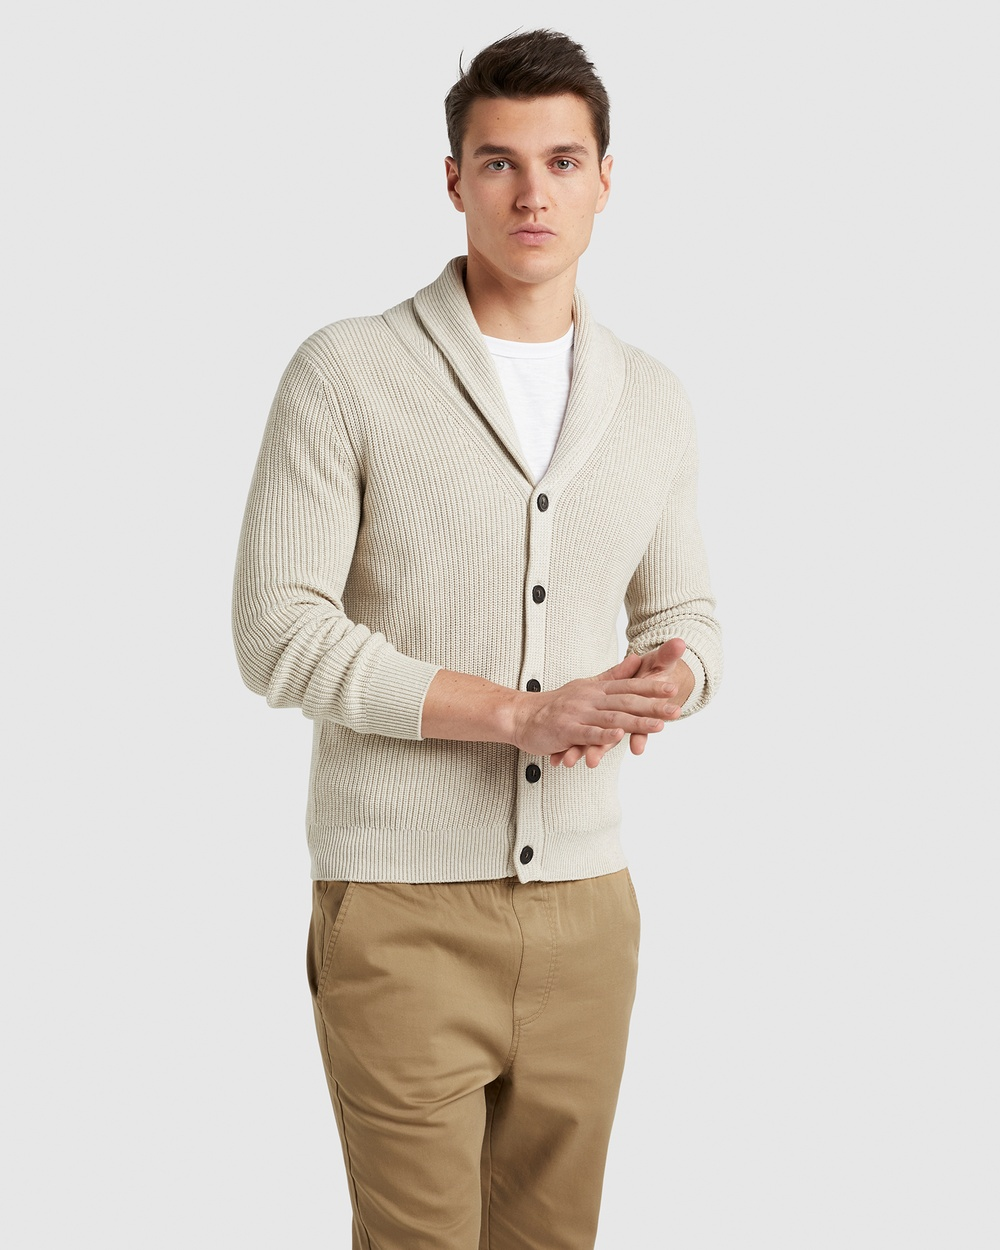 French Connection Shawl Collar Cardigan Jumpers & Cardigans OATMEAL MARLE Australia